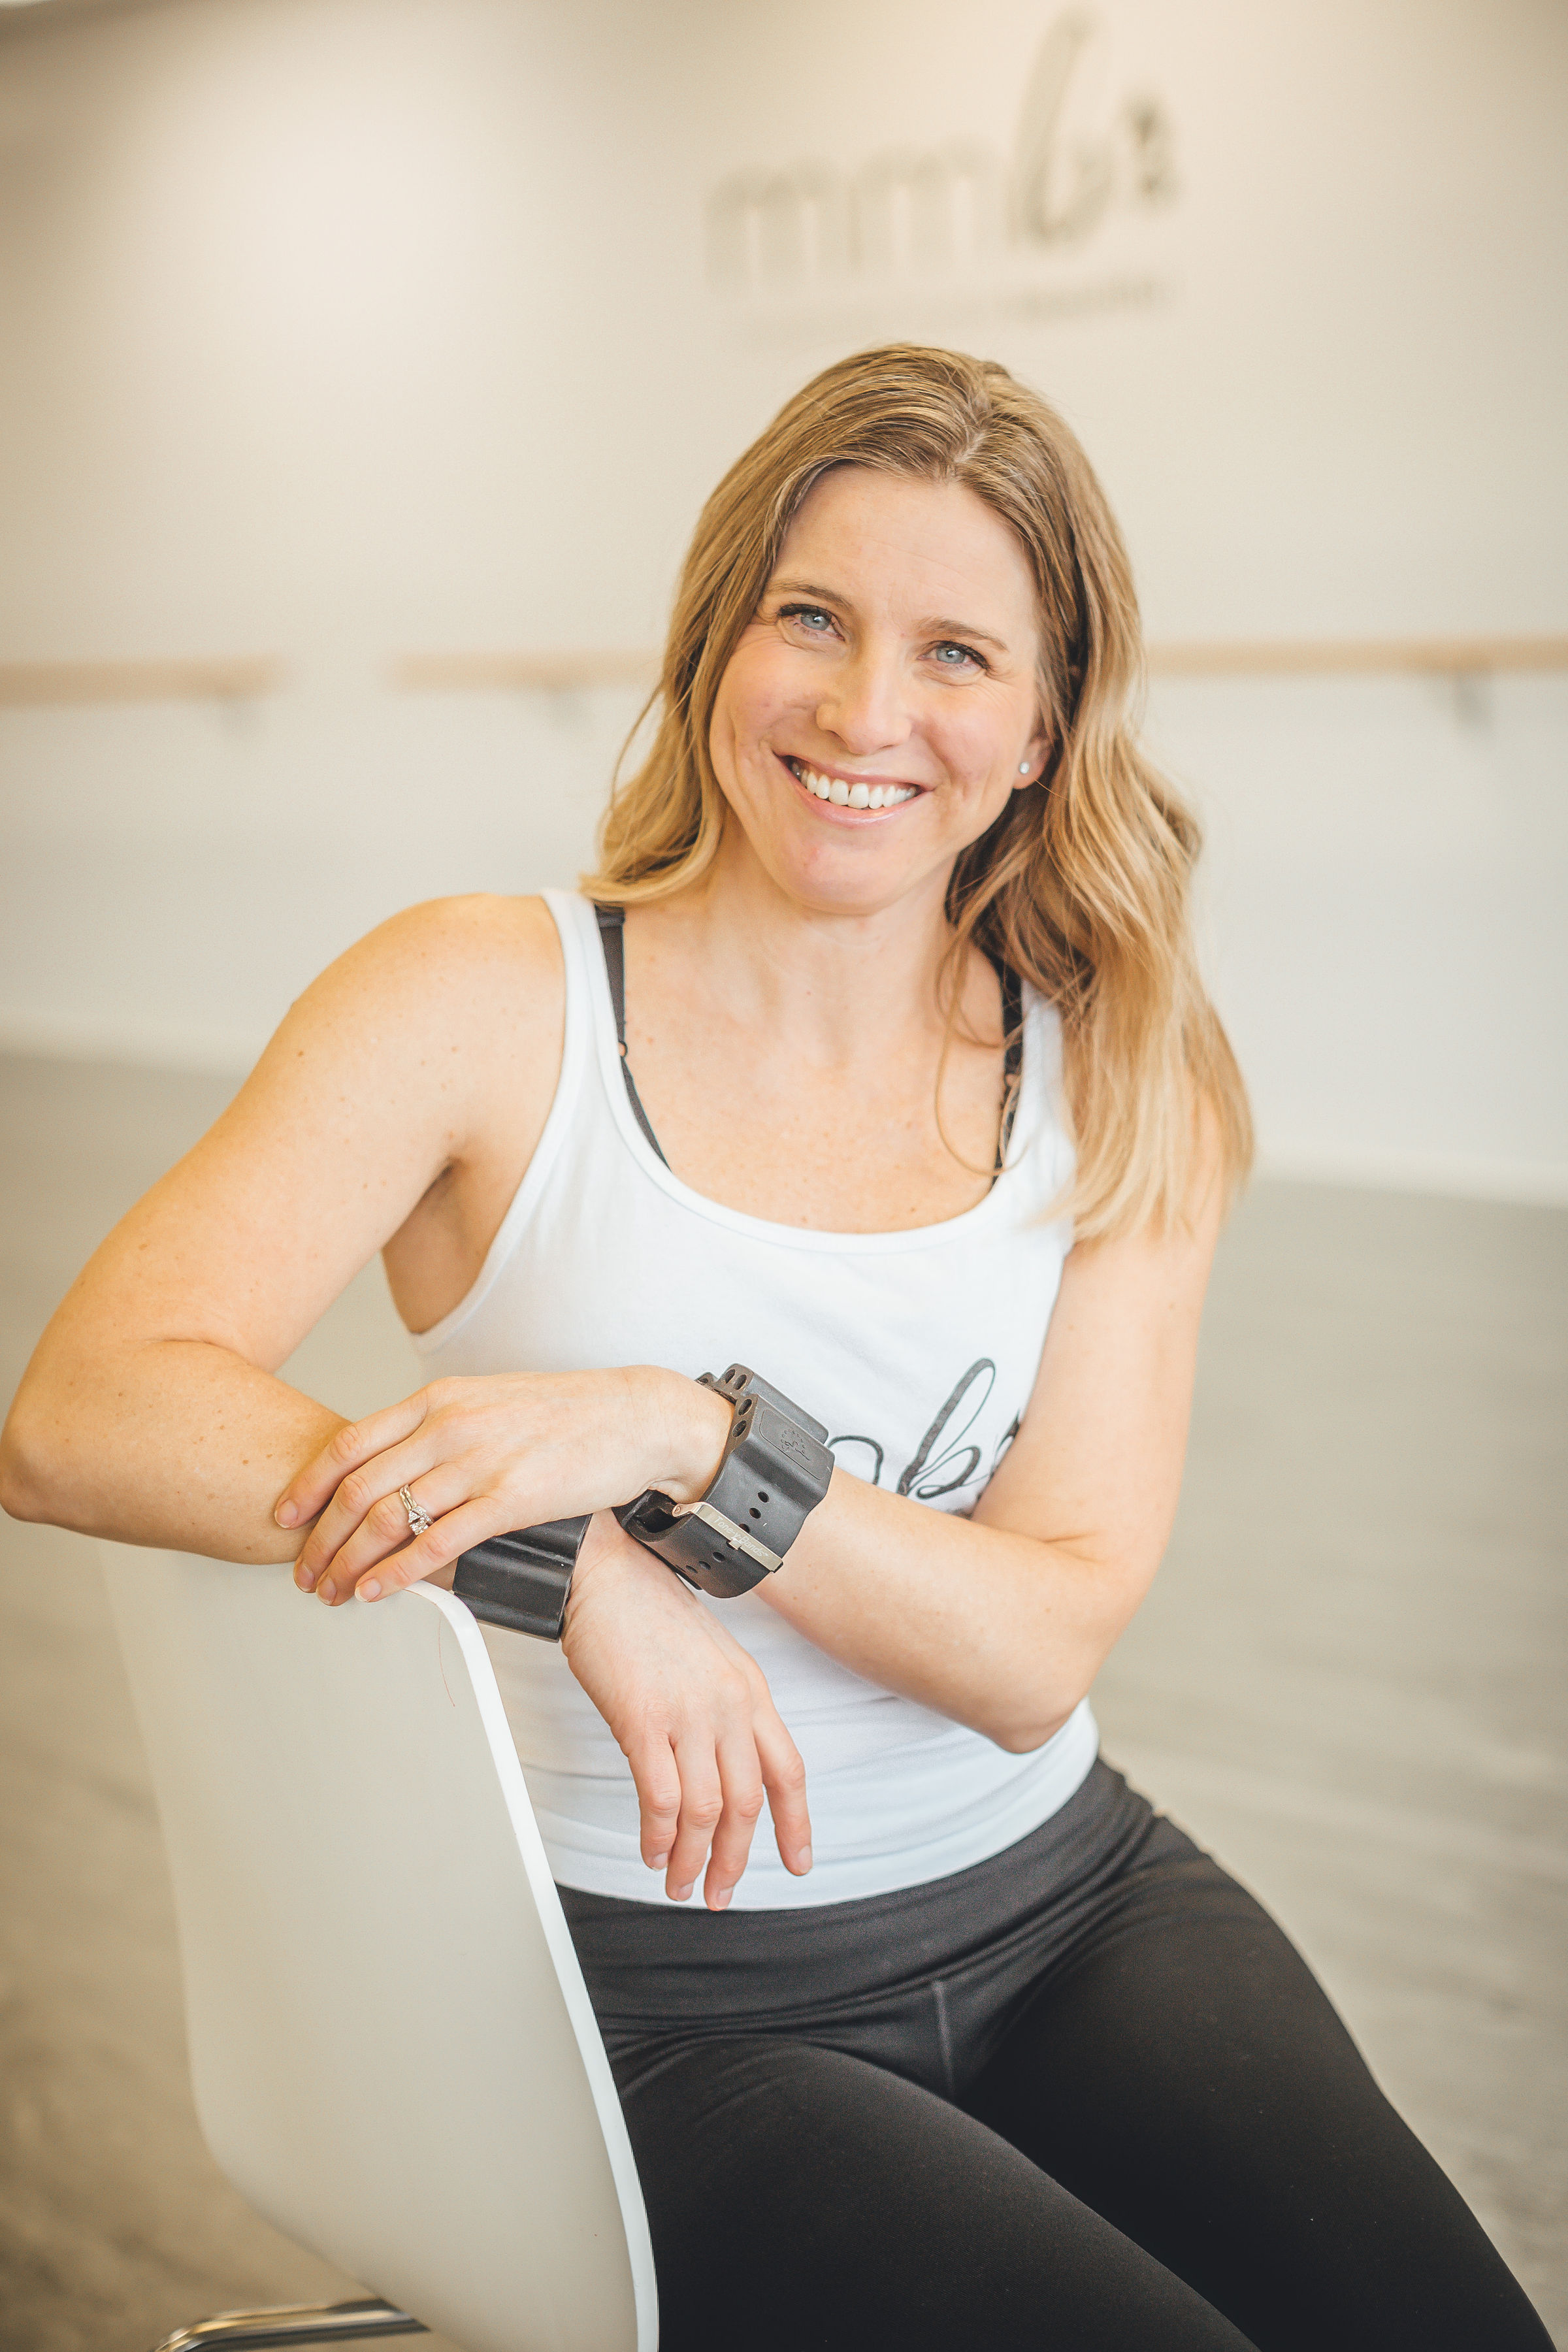 Natalie Haut-Instructor of Cardio Dance, MMB Kids, and Birthday Parties. Natalie also participates in creating social media for MMB. Natalie has a very a cheerful presence about her that is always welcoming to all who take classes from her or with her,